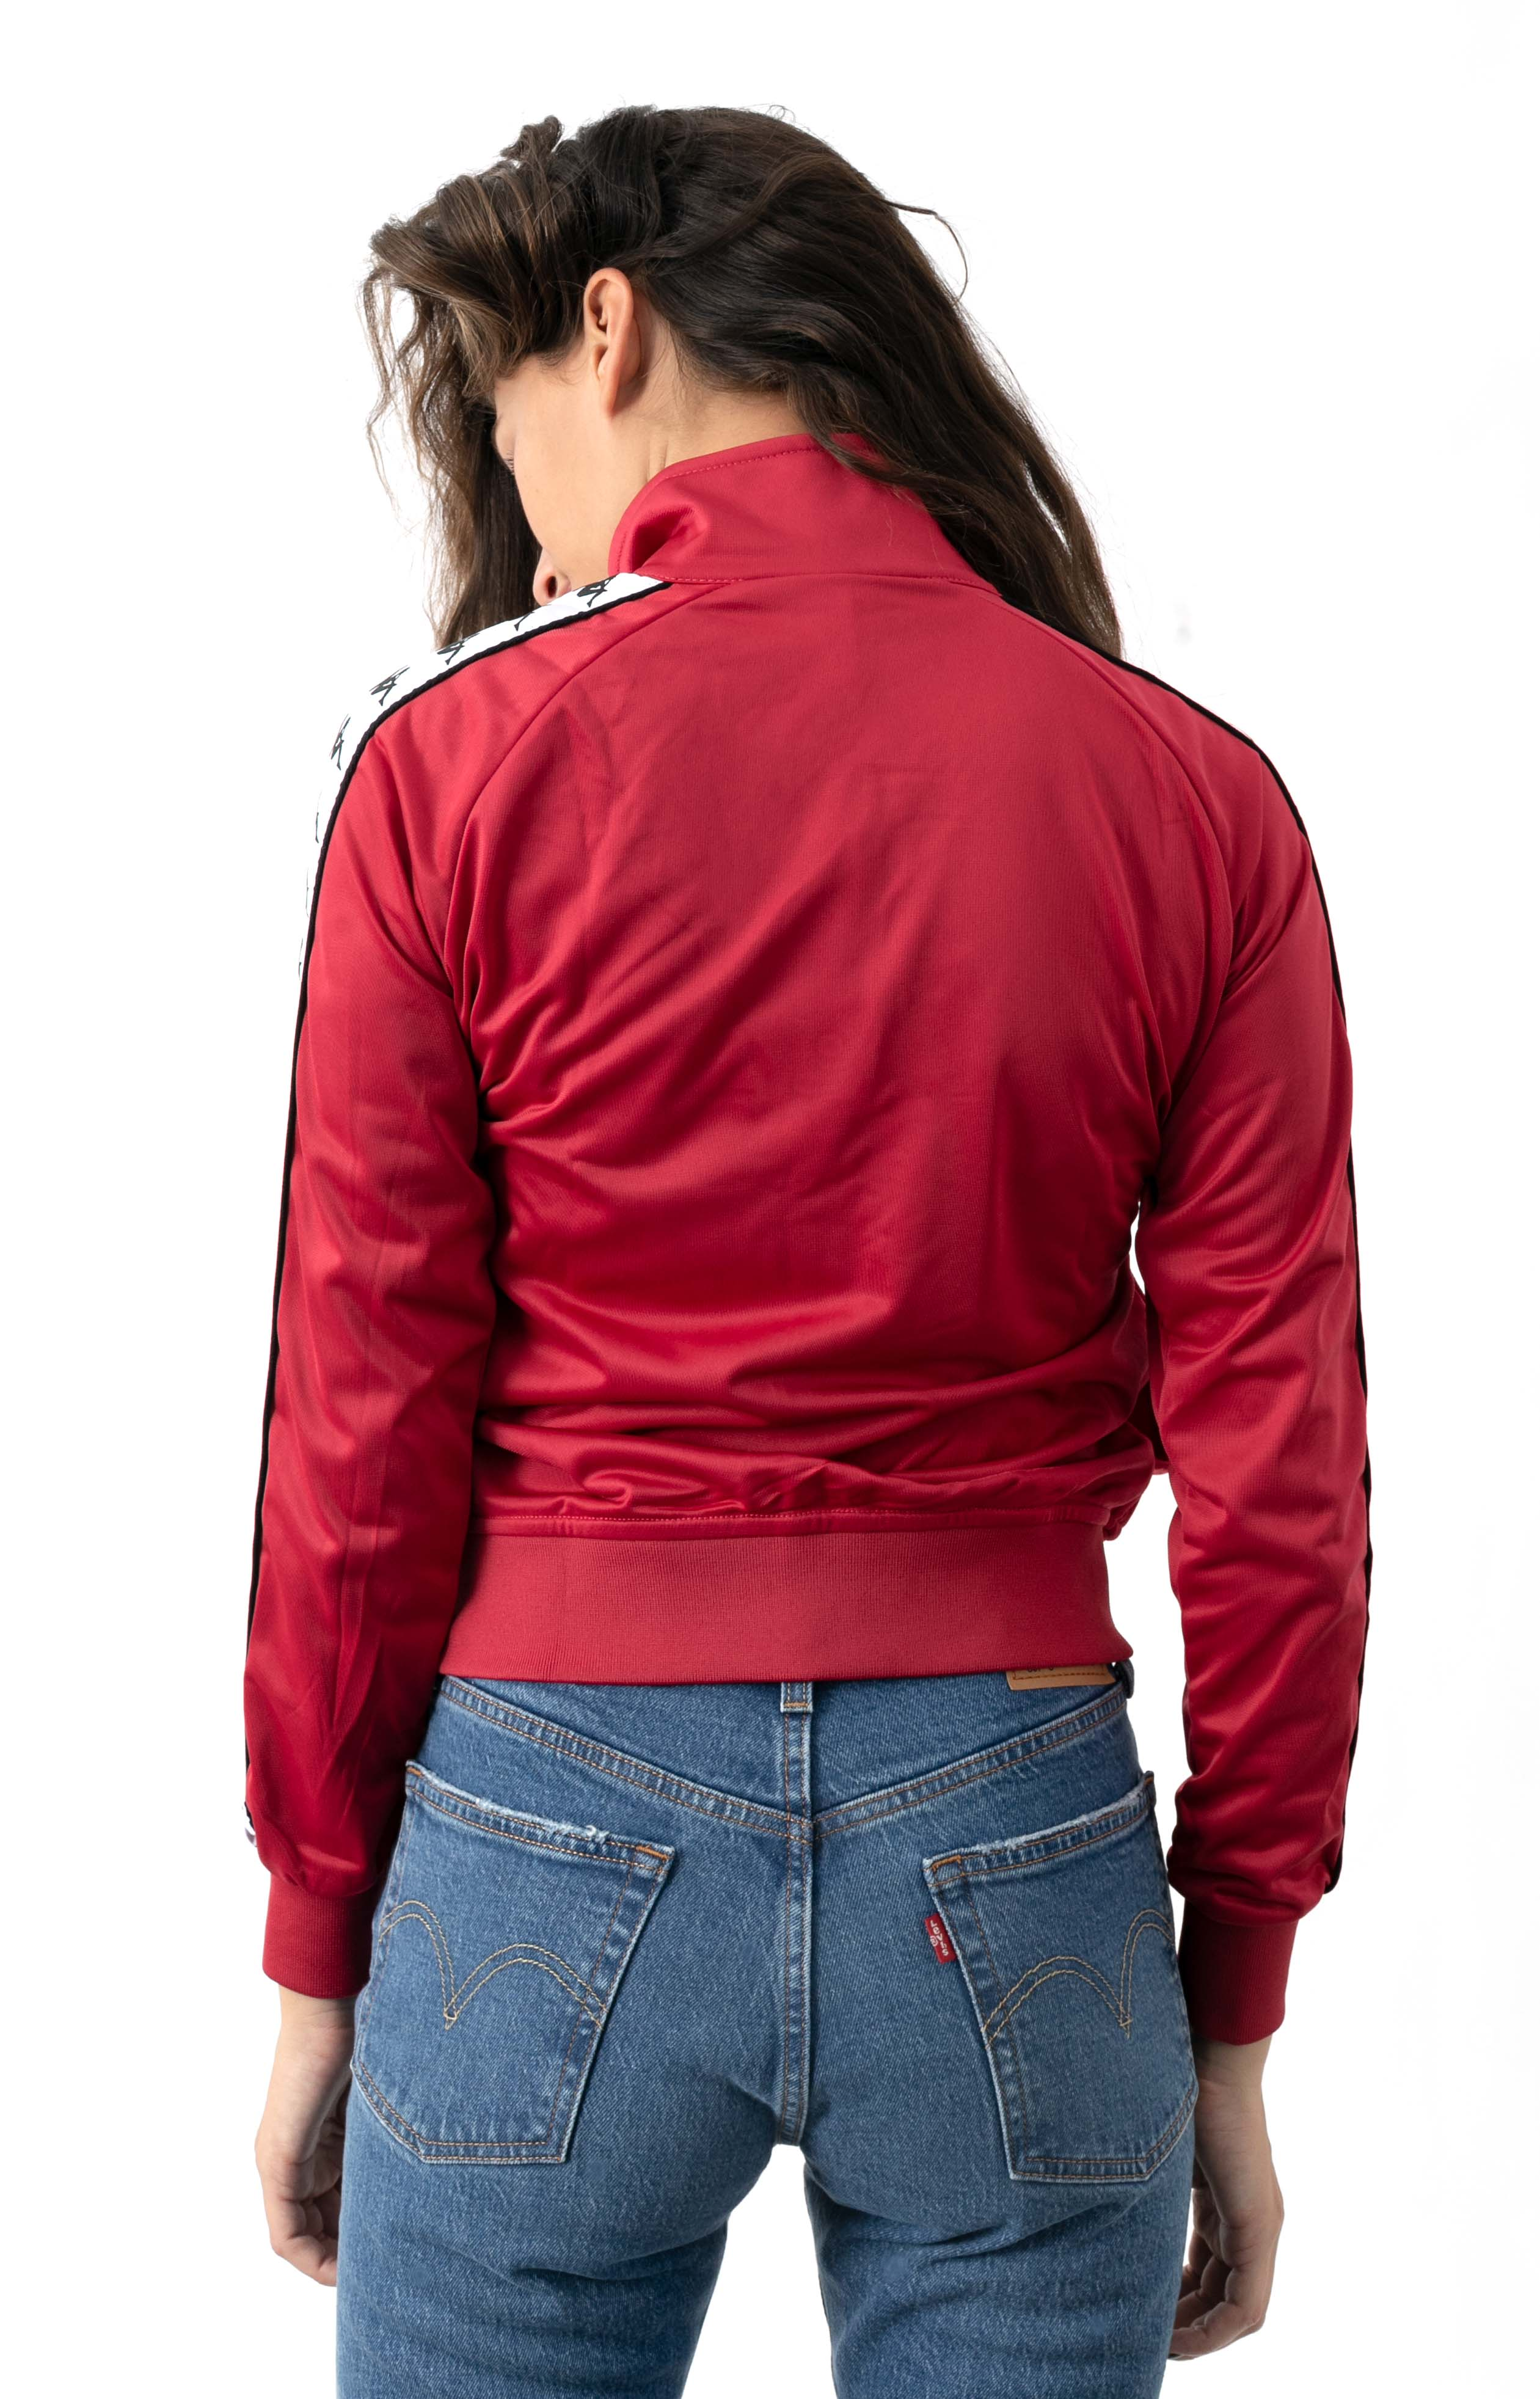 222 Banda Wanniston Slim Track Jacket - Red Cyclamen/White  3